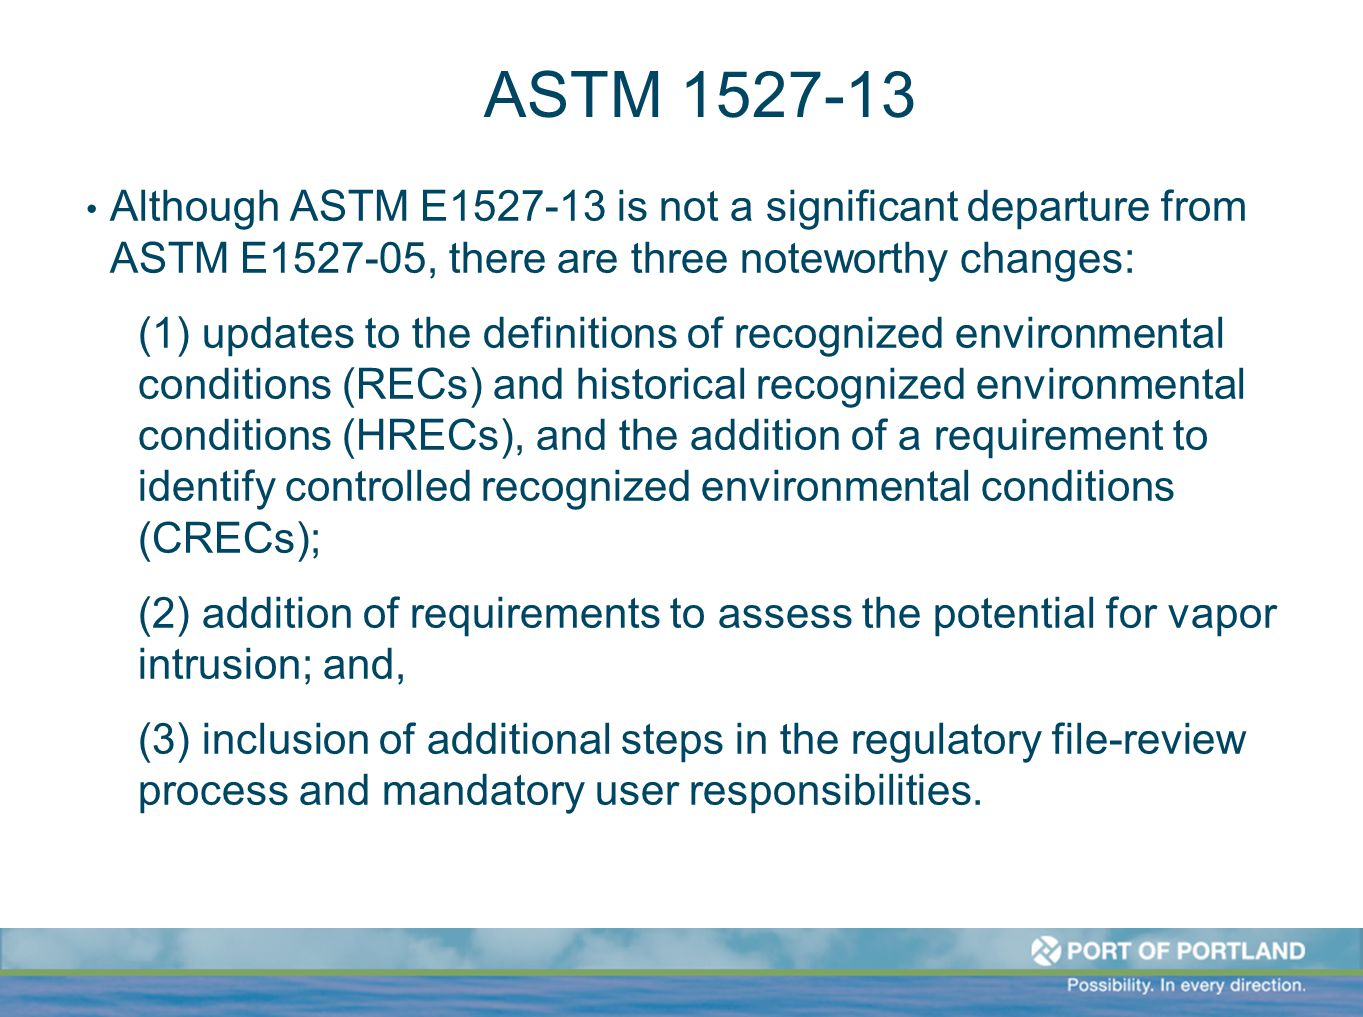 ASTM 1527-13 Although ASTM E1527-13 is not a significant departure from ASTM E1527-05, there are three noteworthy changes: (1) updates to the definiti